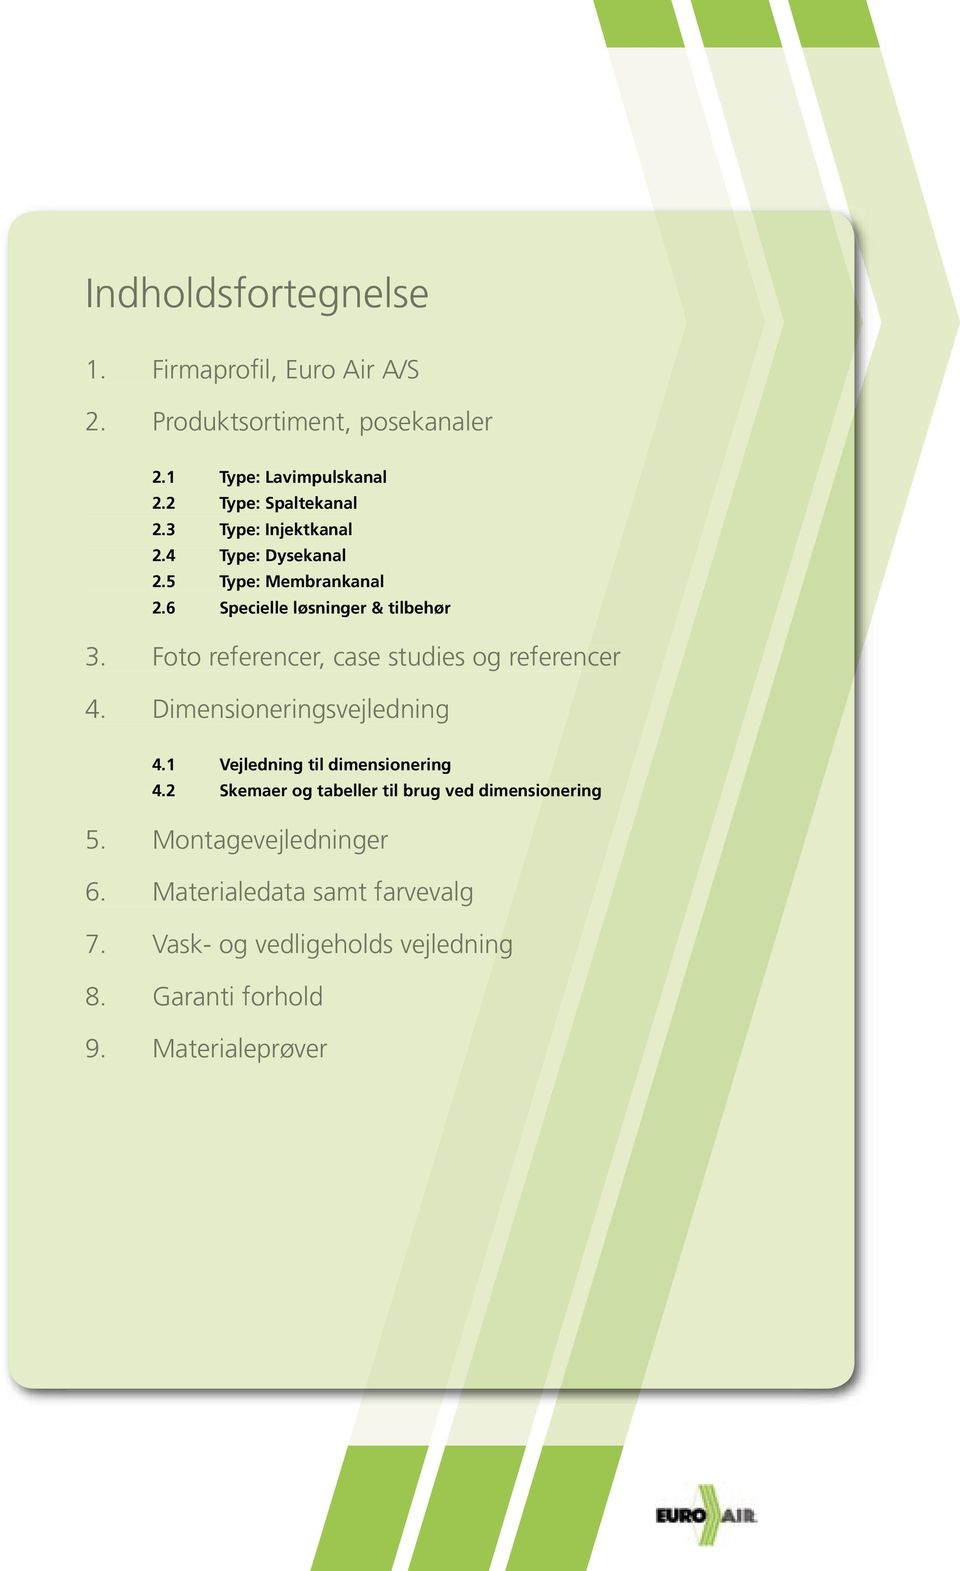 Foto referencer, case studies og referencer 4. Dimensioneringsvejledning 4.1 Vejledning til dimensionering 4.